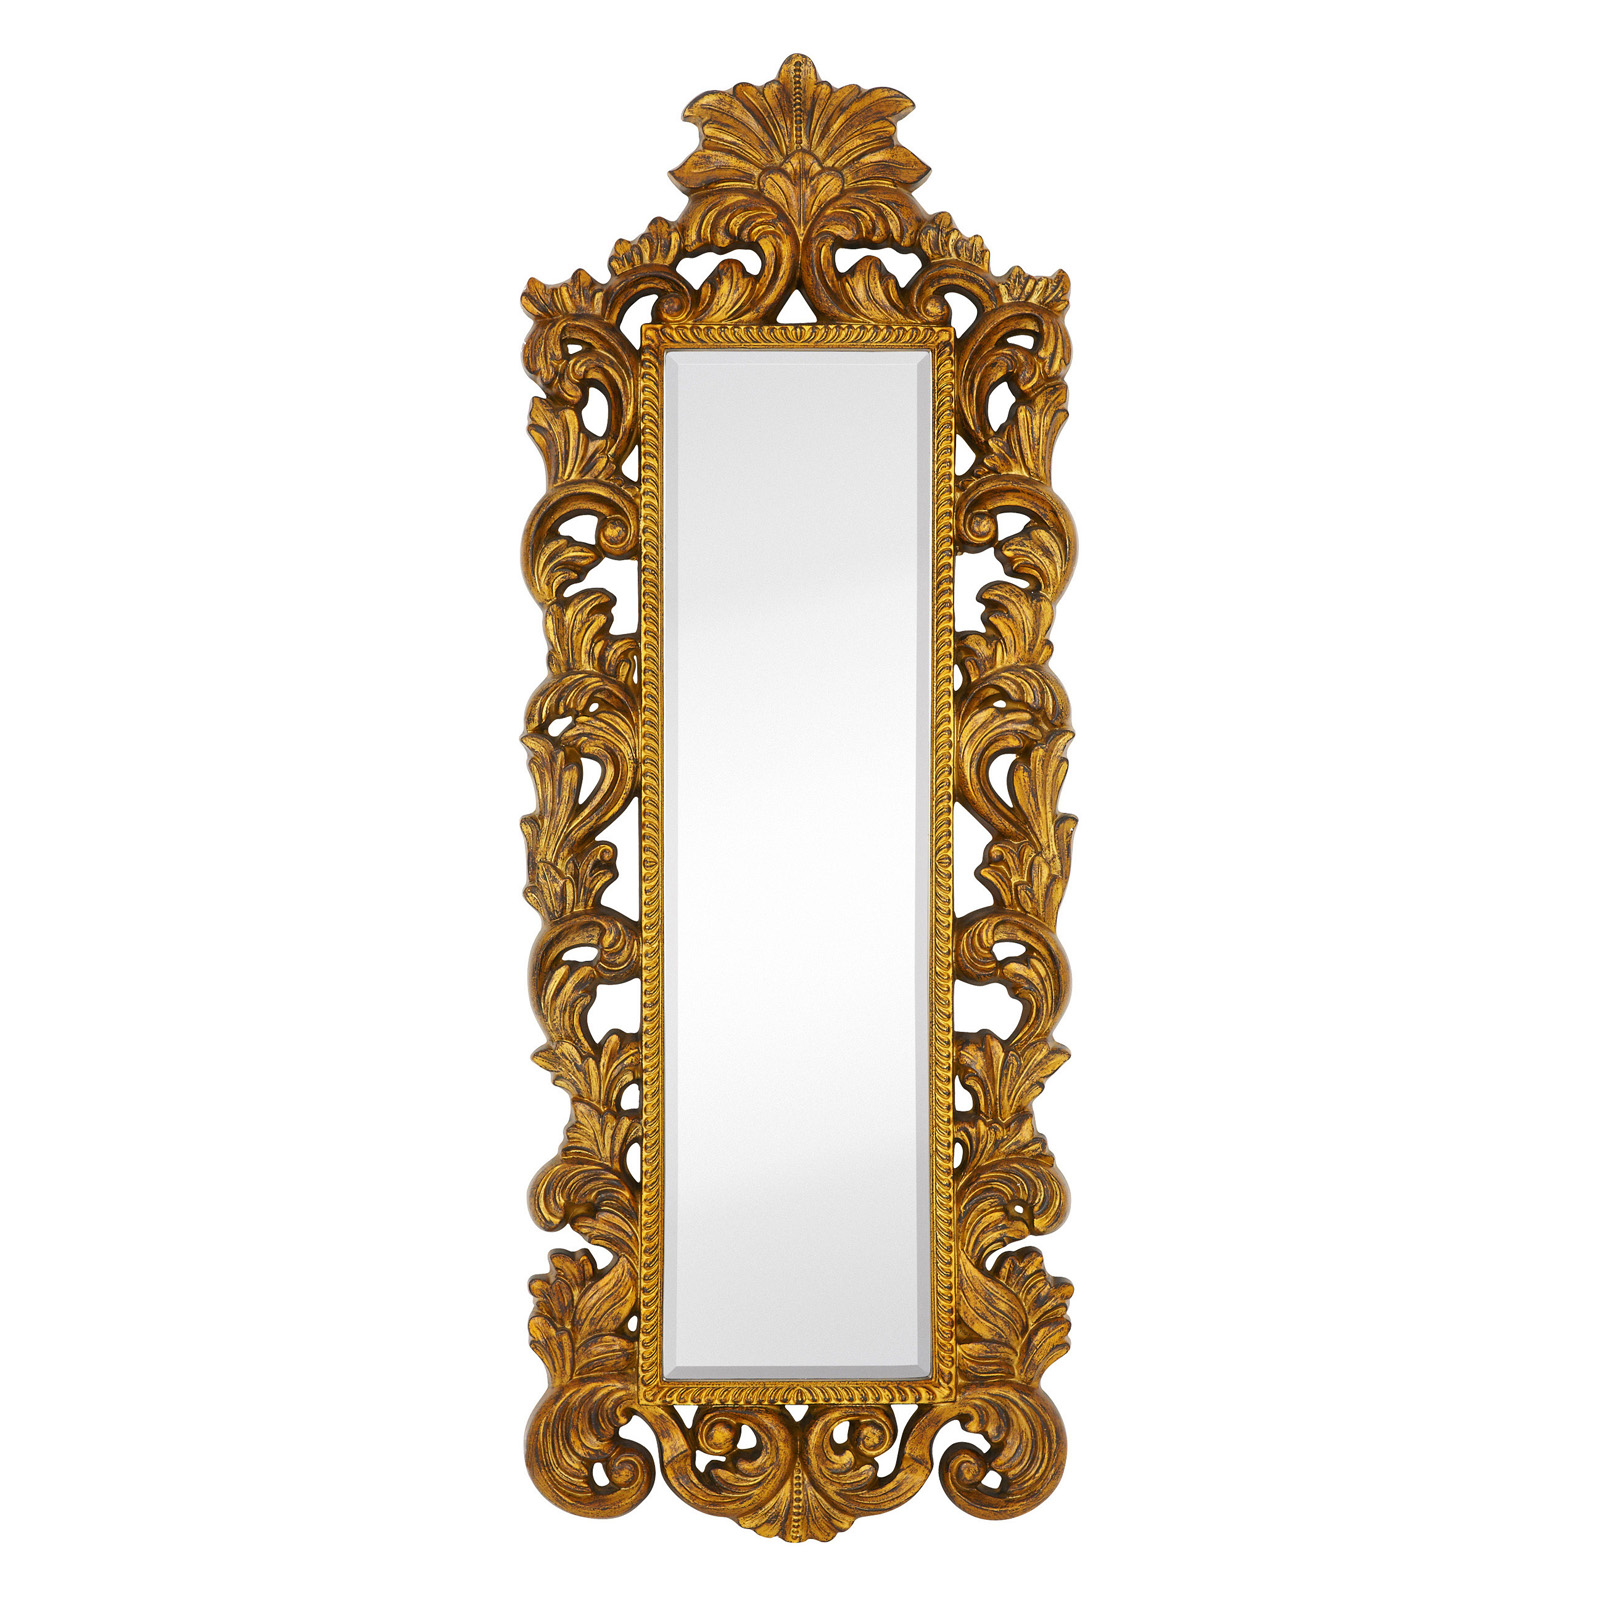 Majestic tall narrow wall mirror mirrors at hayneedle for Narrow mirror